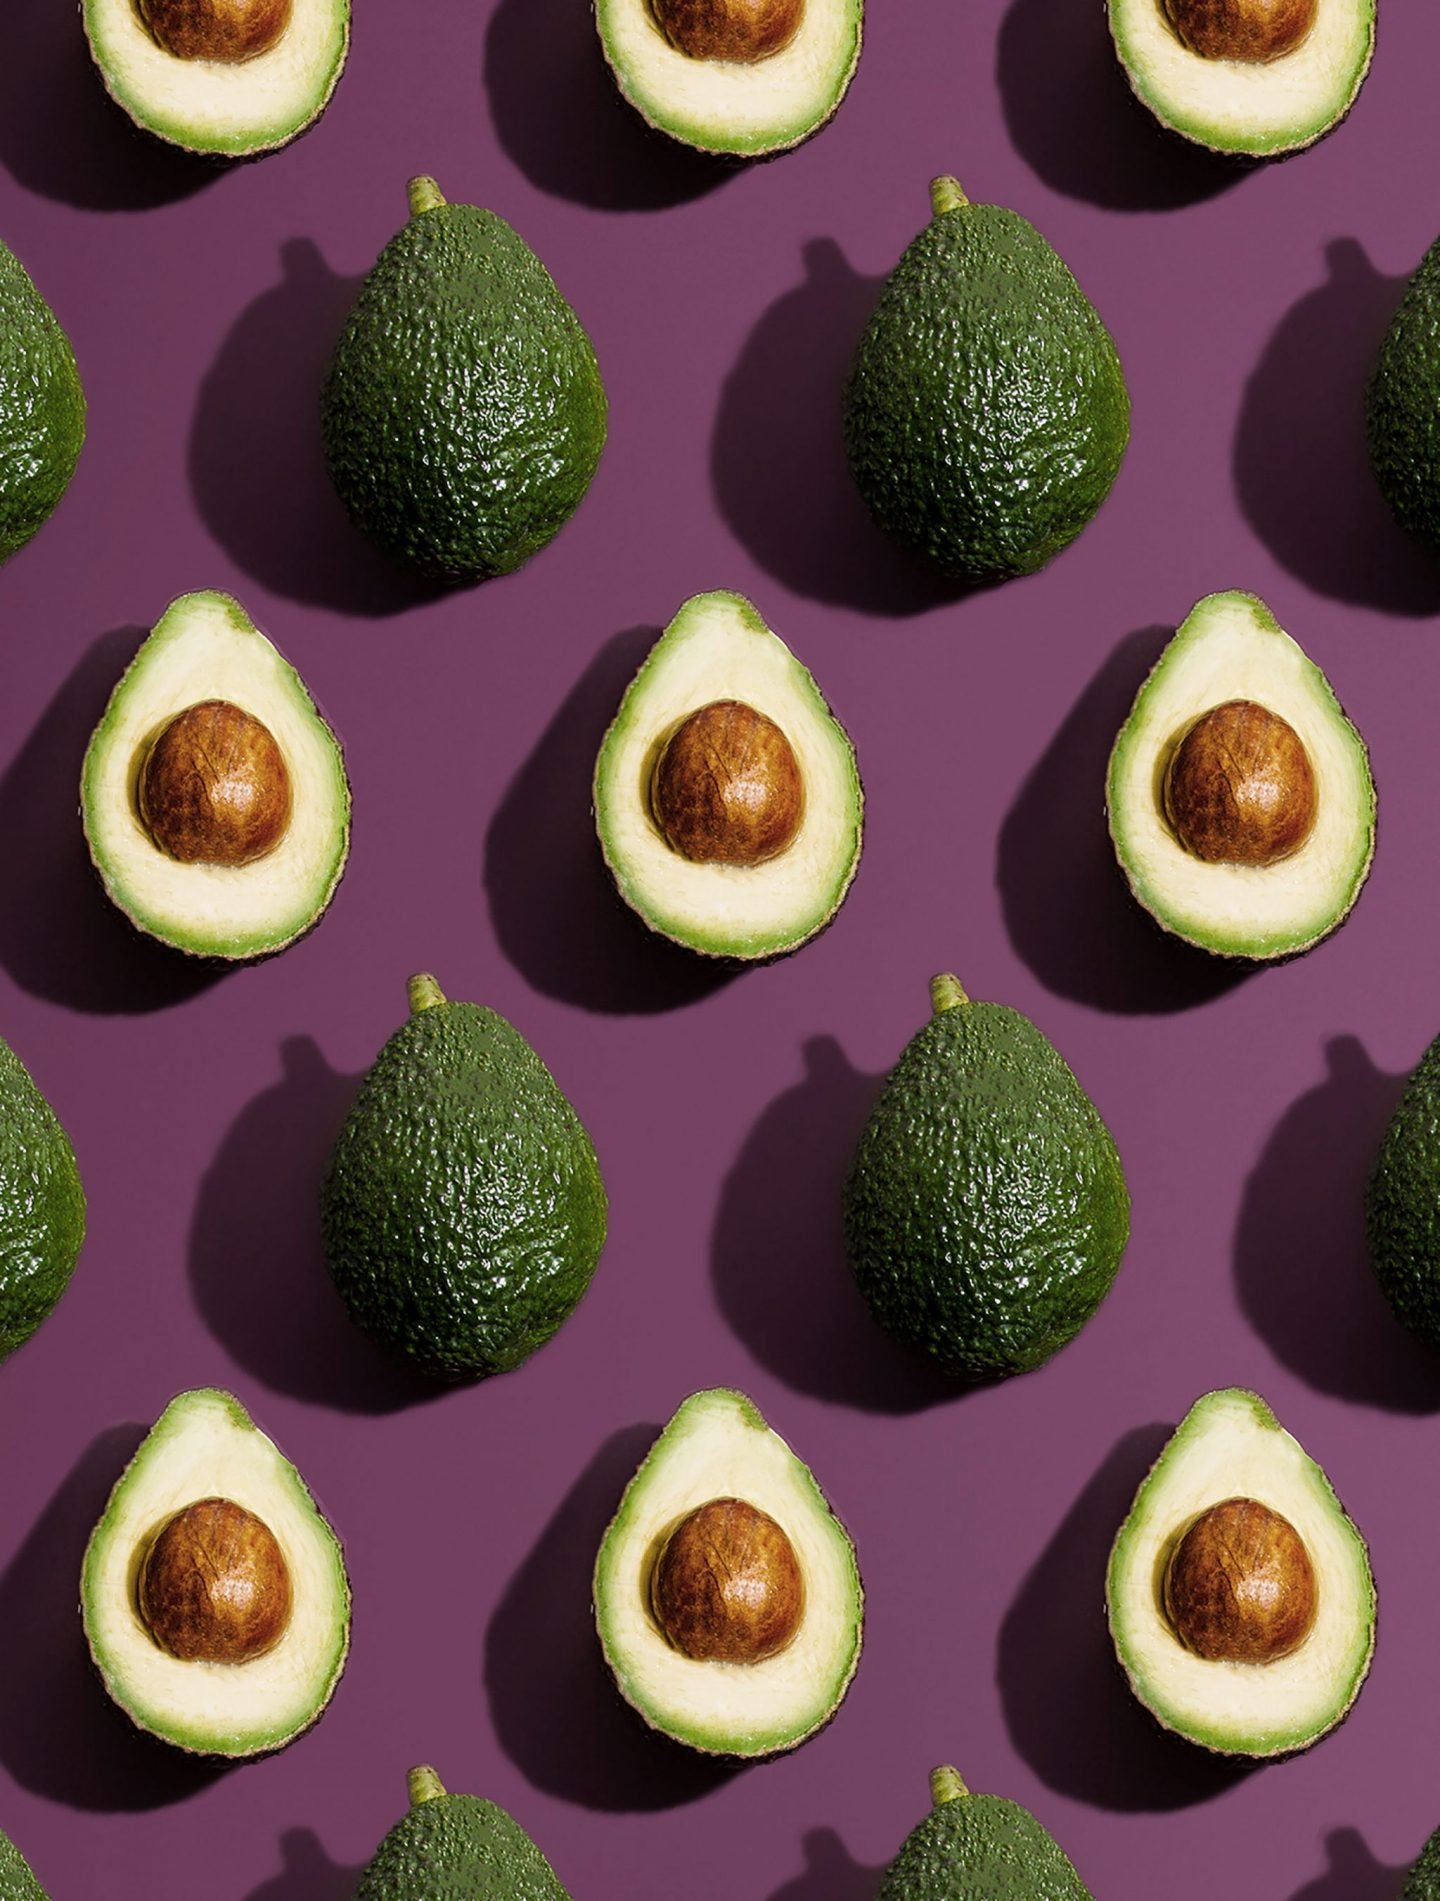 BEST KNOWN SUPERFOODS AND HOW TO EAT THEM